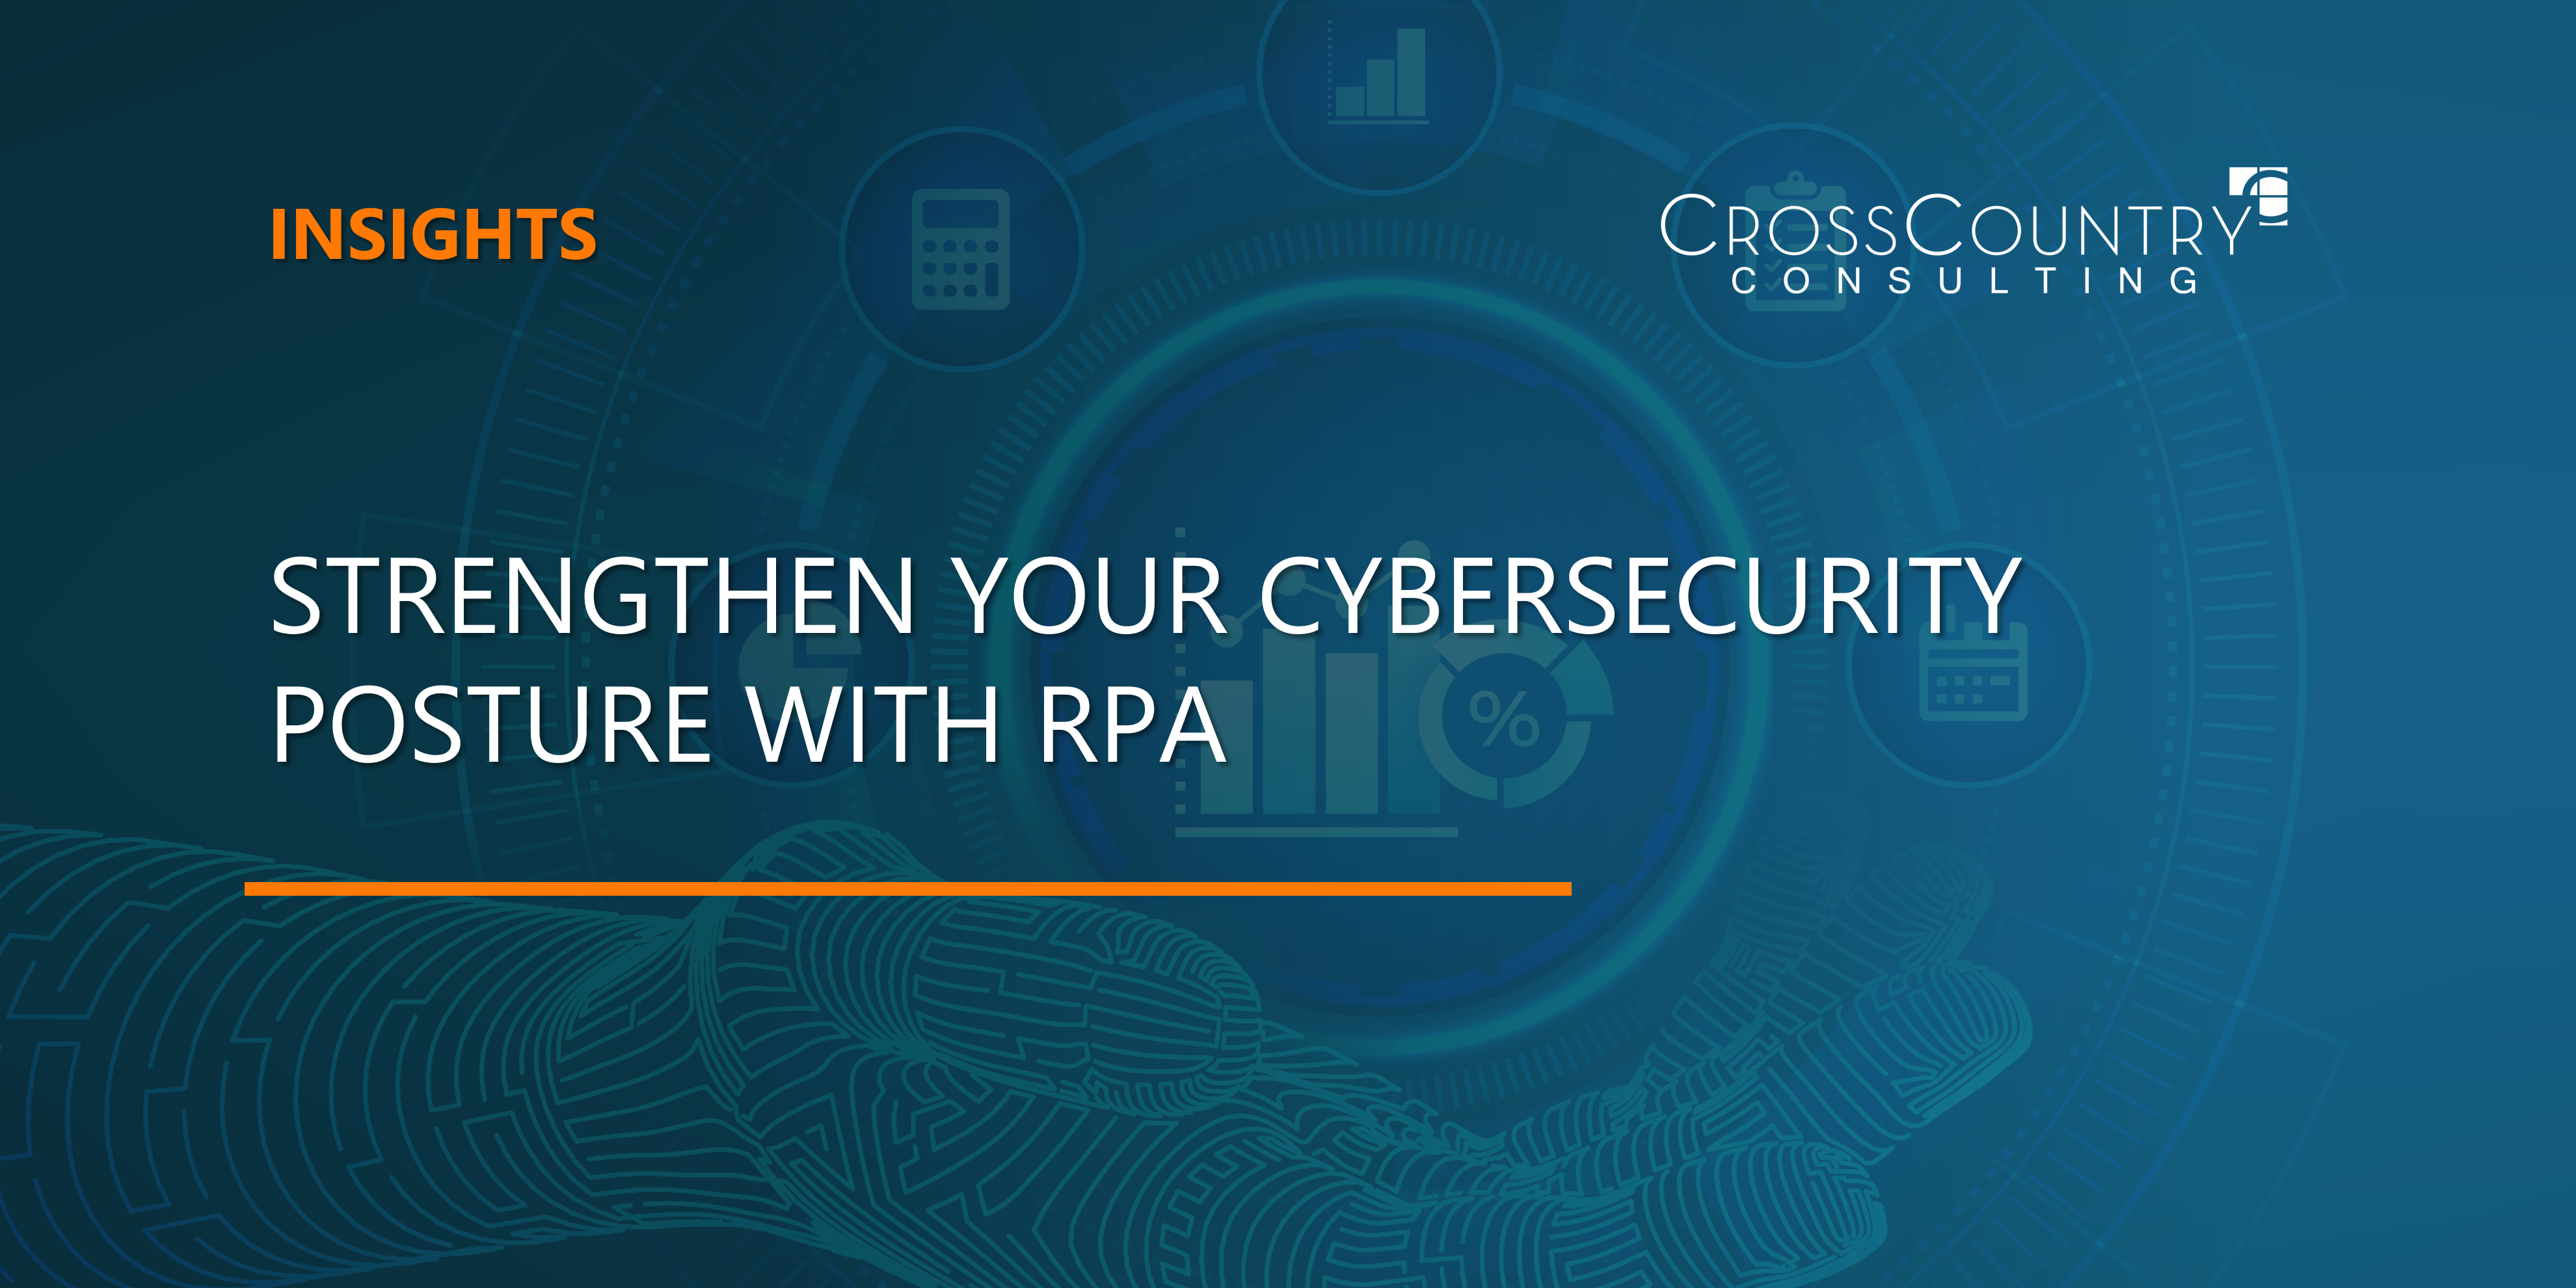 Strengthen Your Cybersecurity Posture with RPA